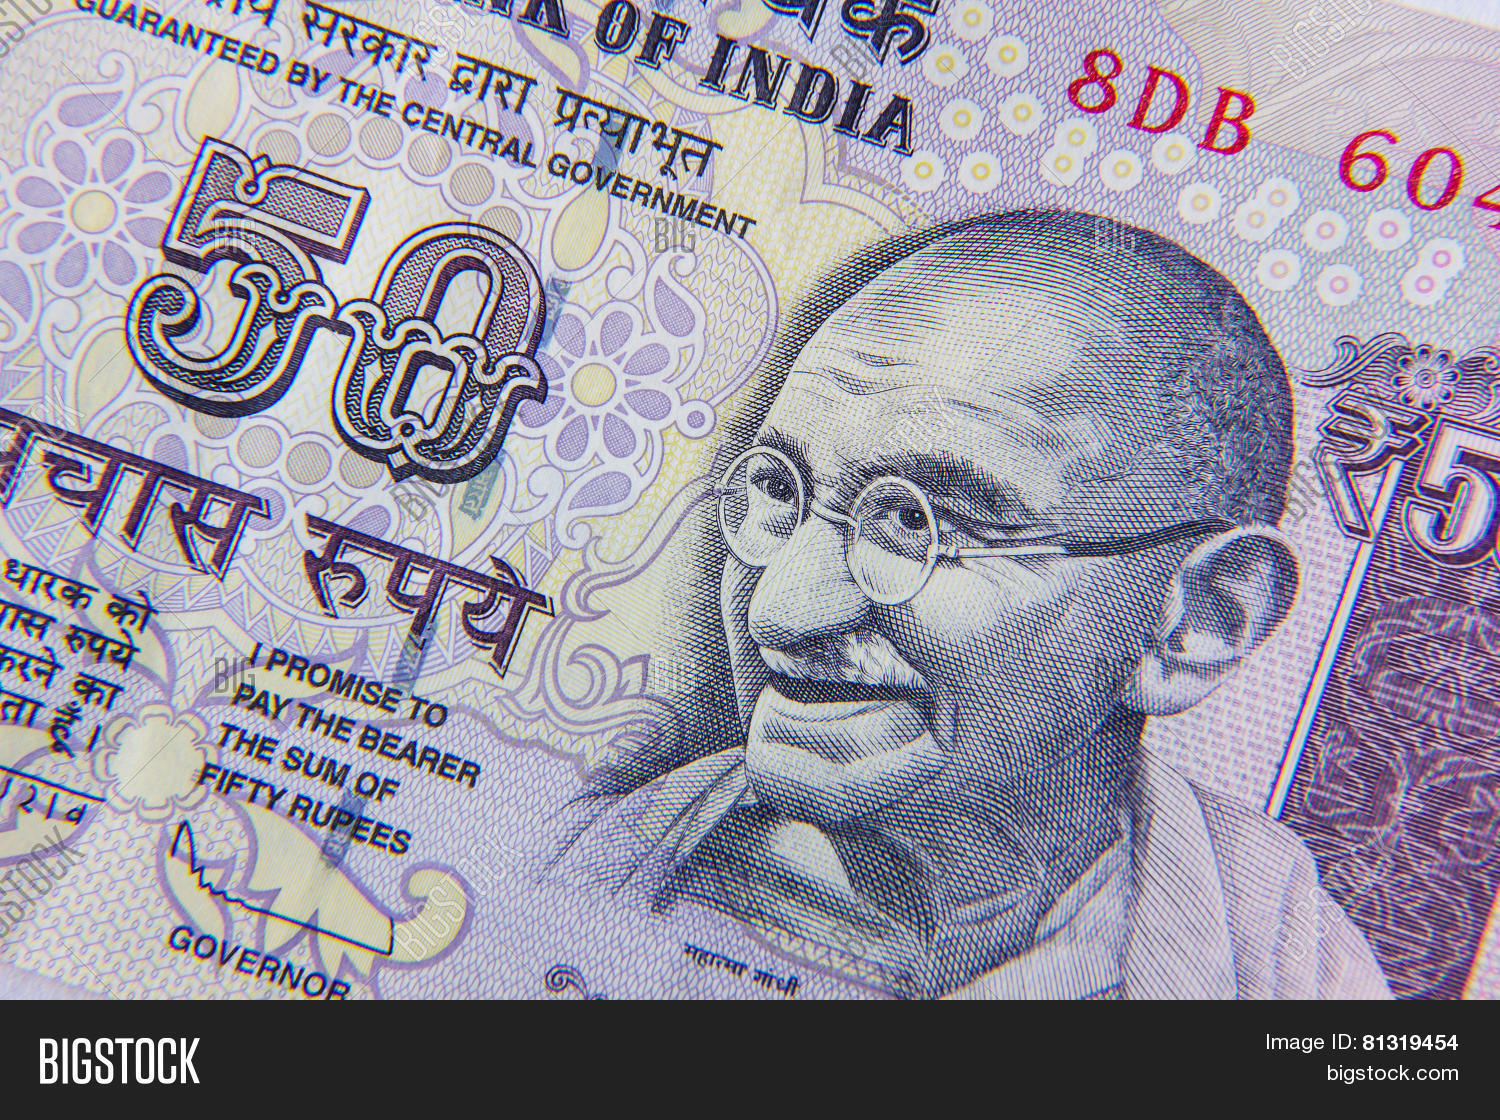 Indian Currency Image & Photo (Free Trial) | Bigstock